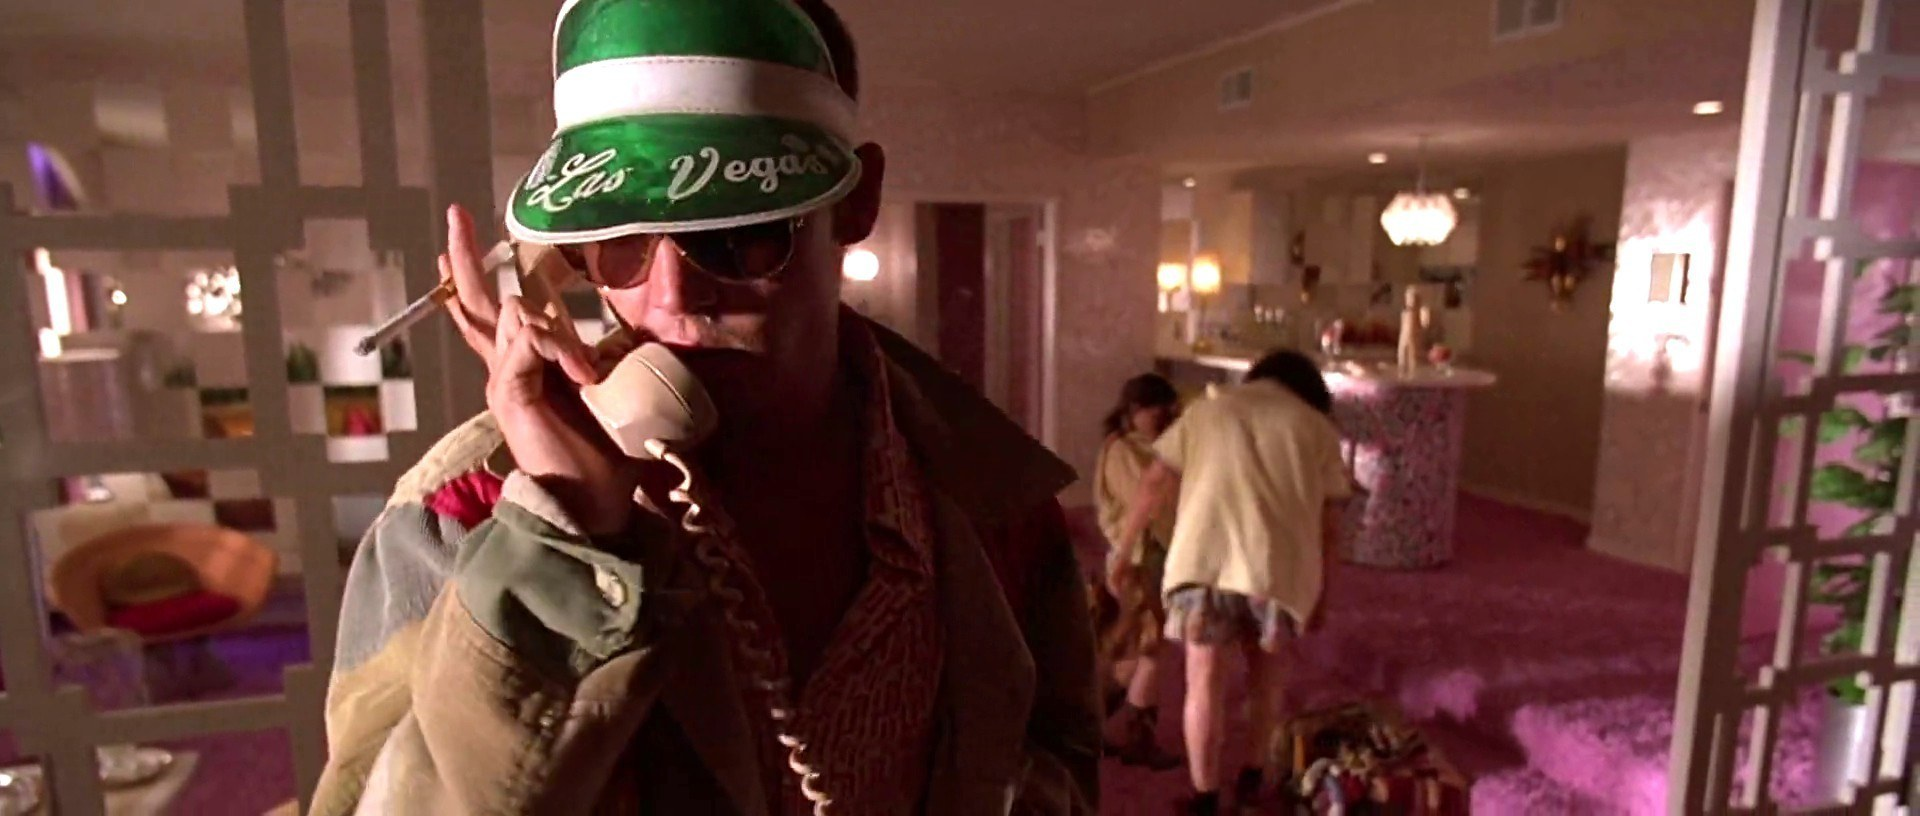 film-fear_and_loathing_in_las_vegas-1998-raoul_duke-johnny_depp-accessories-las_vegas_visor